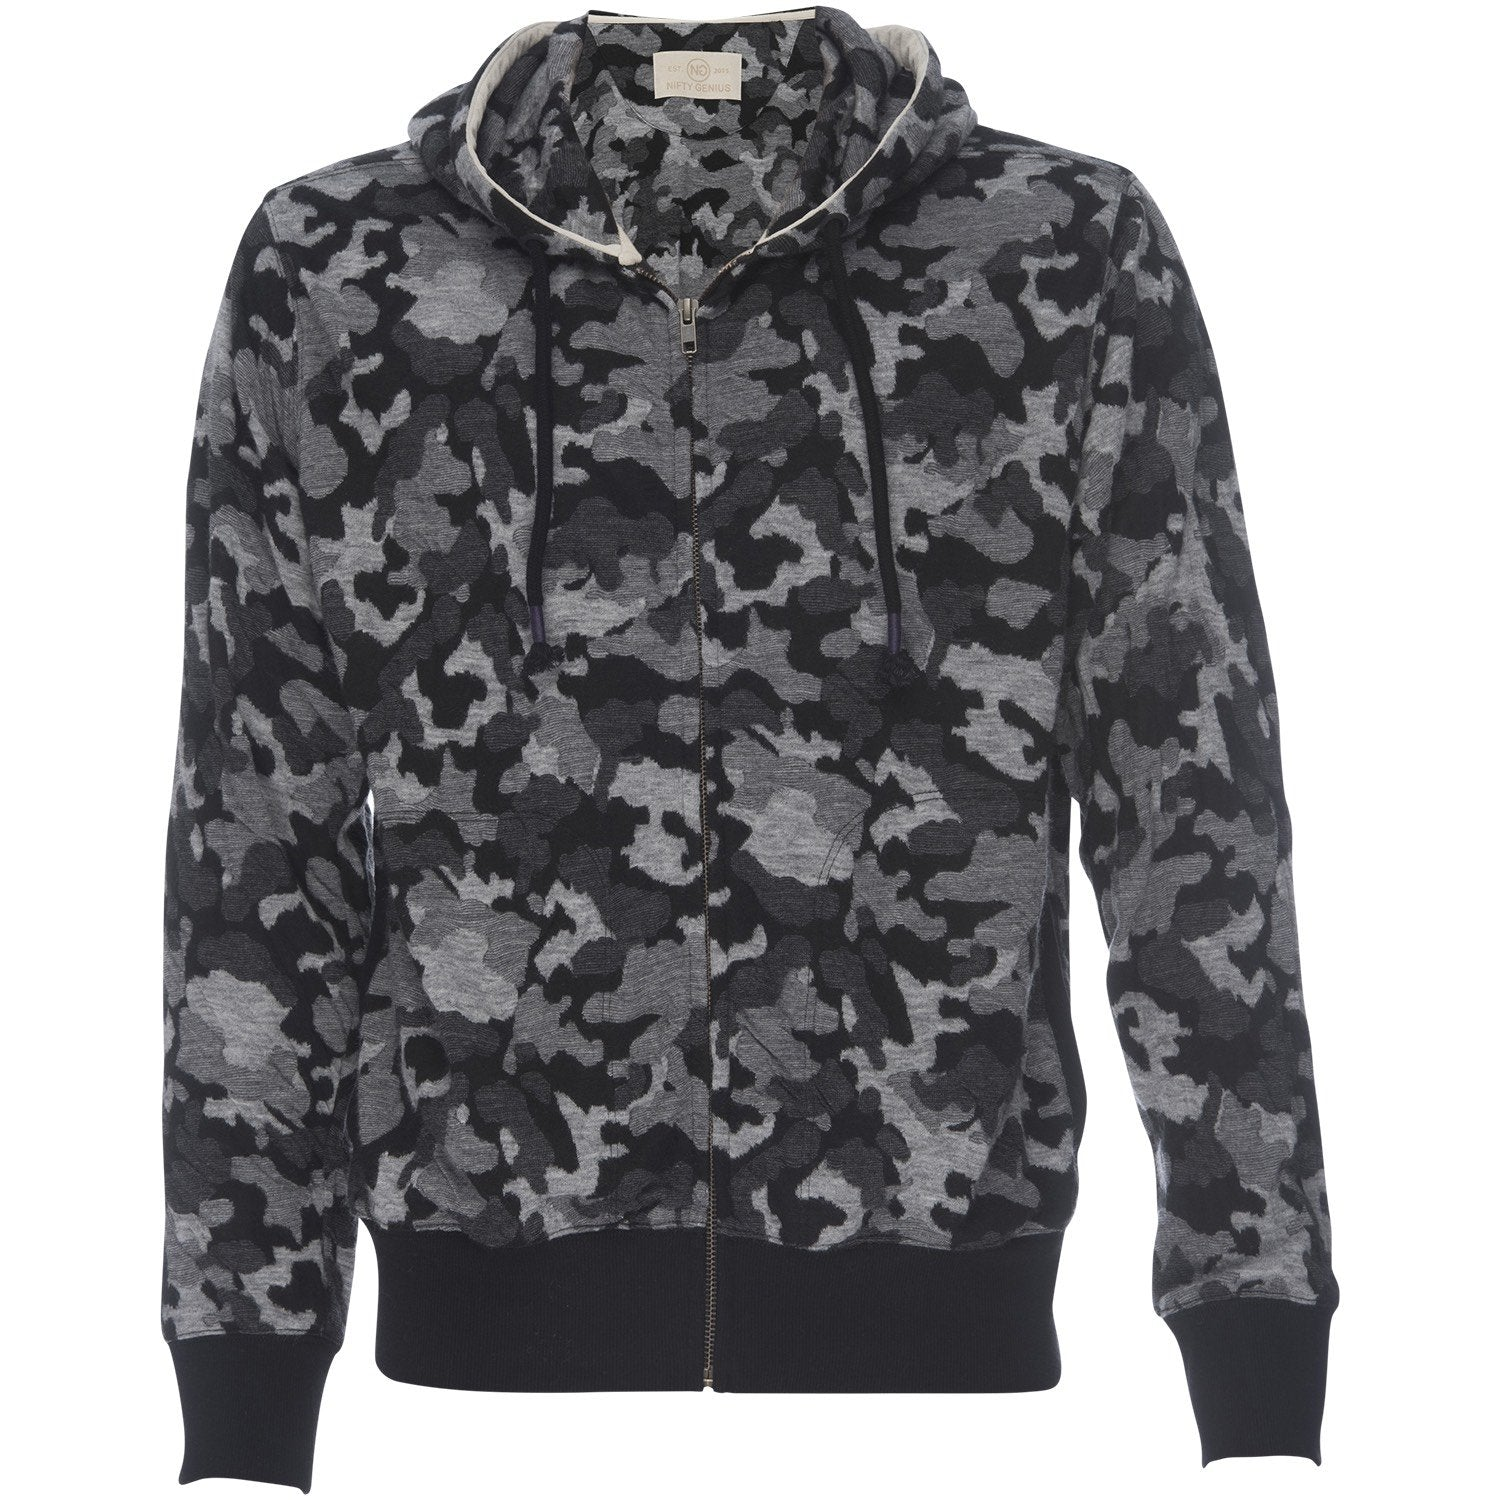 Cassius Hooded Sweatshirt in Camo